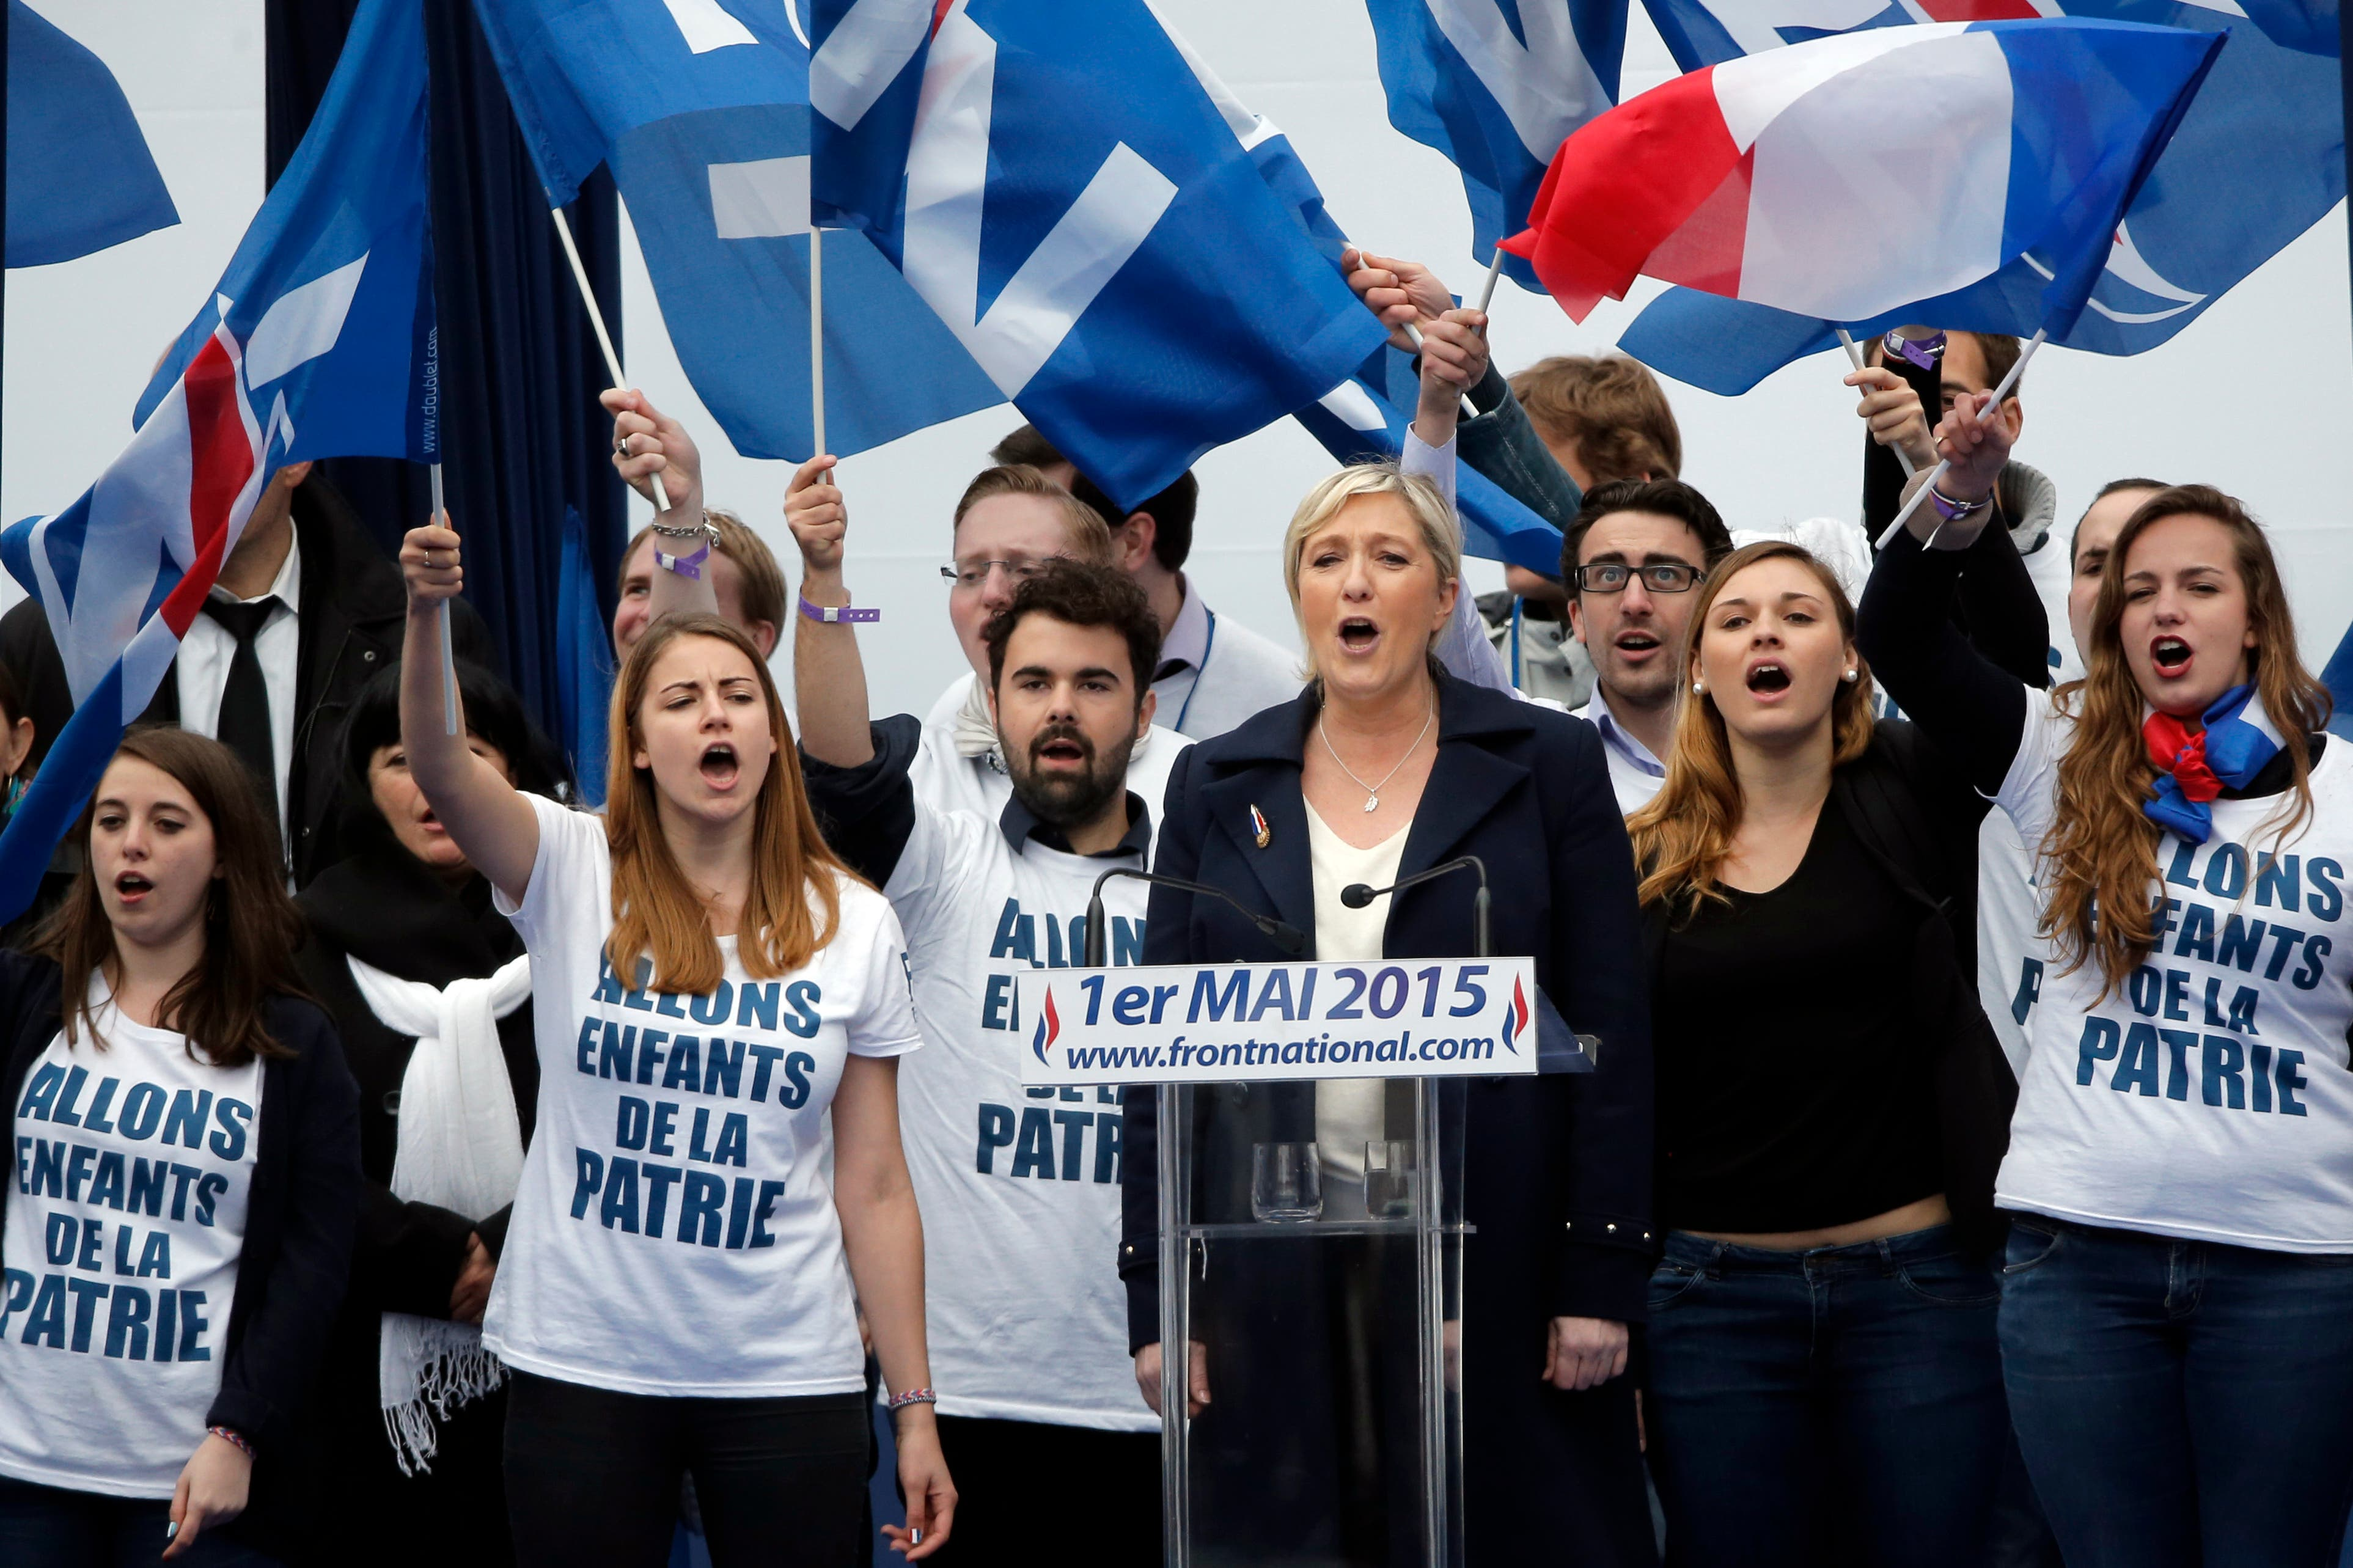 France's far-right National Front president Marine Le Pen, center, surrounded by supporters. (File photo:AP